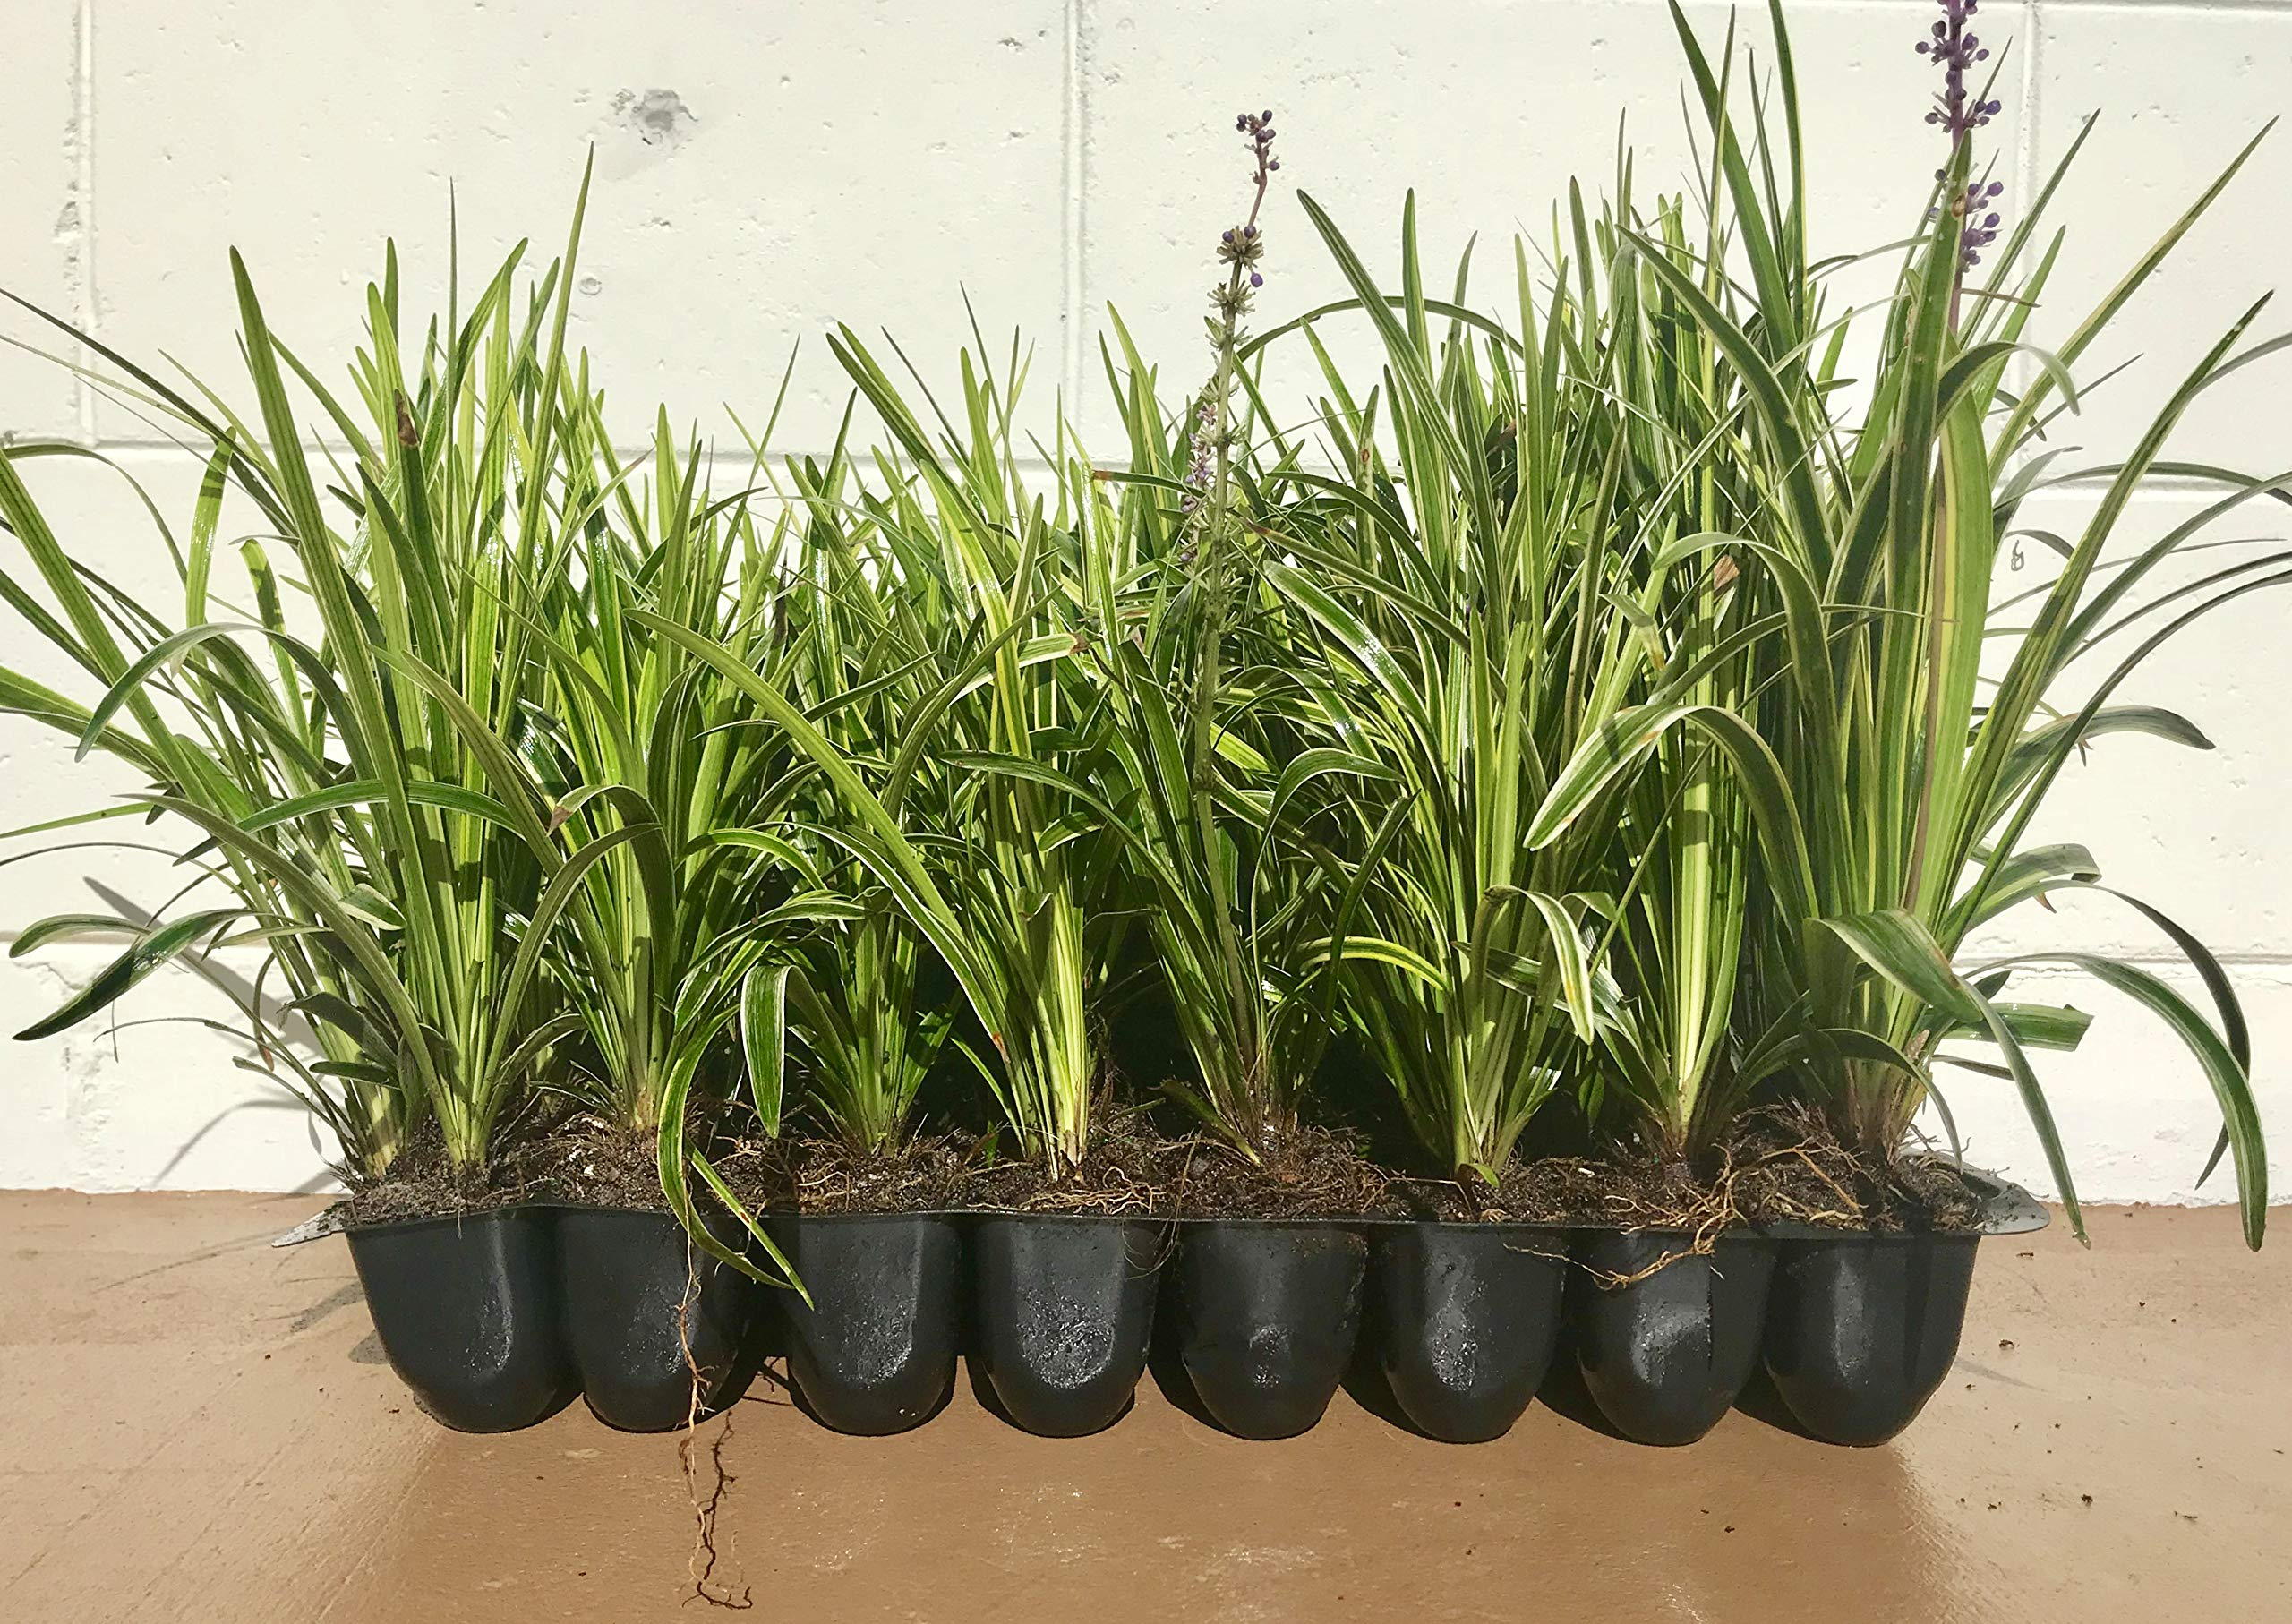 Liriope 'Variegated' Grass (Liriope muscari 'Variegata') 3'' in. pots - 18 Count Tray